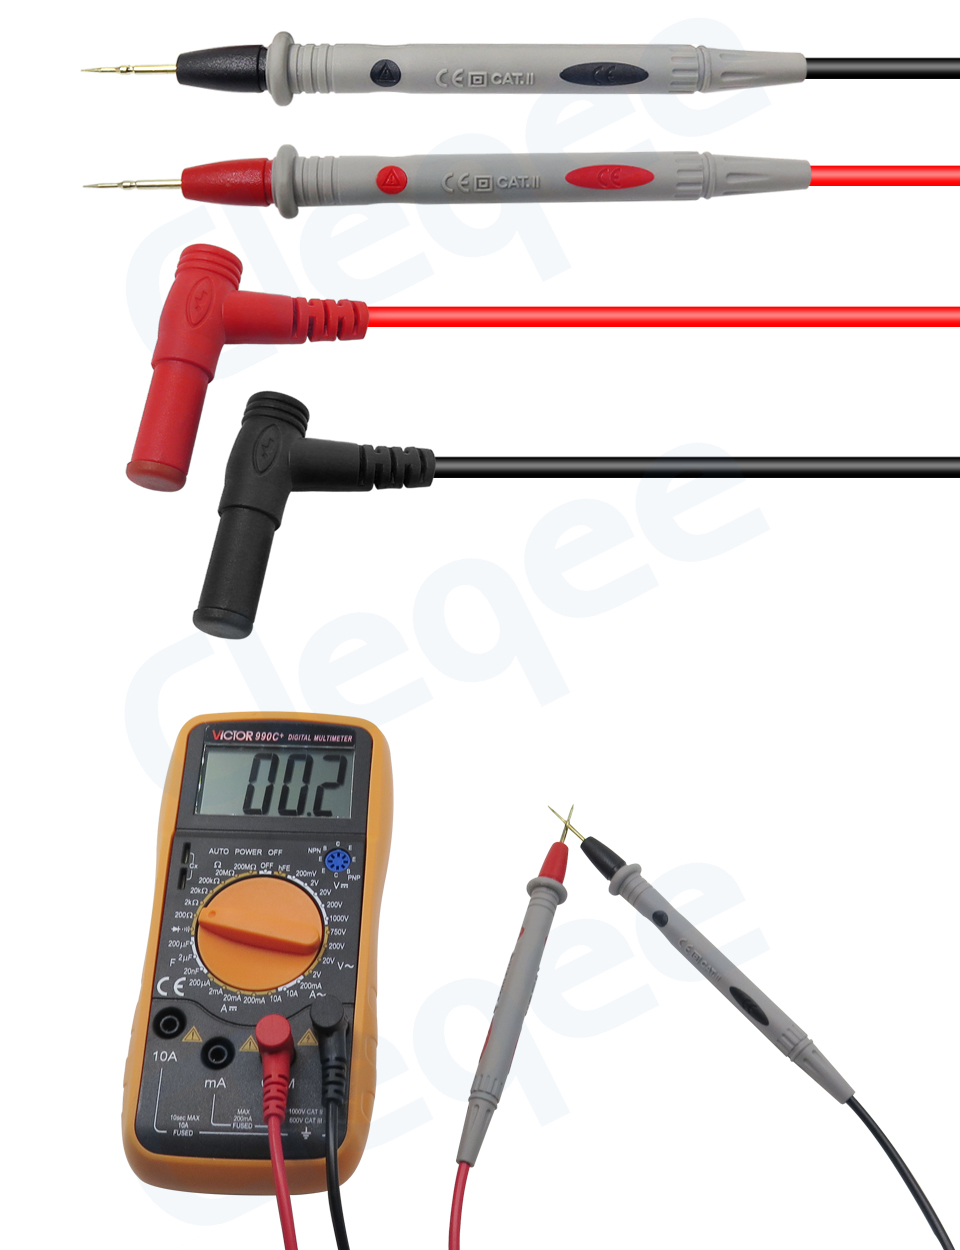 HTB1i9LVXffsK1RjSszgq6yXzpXaW Cleqee Multimeter probes replaceable needles test leads kits probes for digital multimeter cable feeler for multimeter wire tips